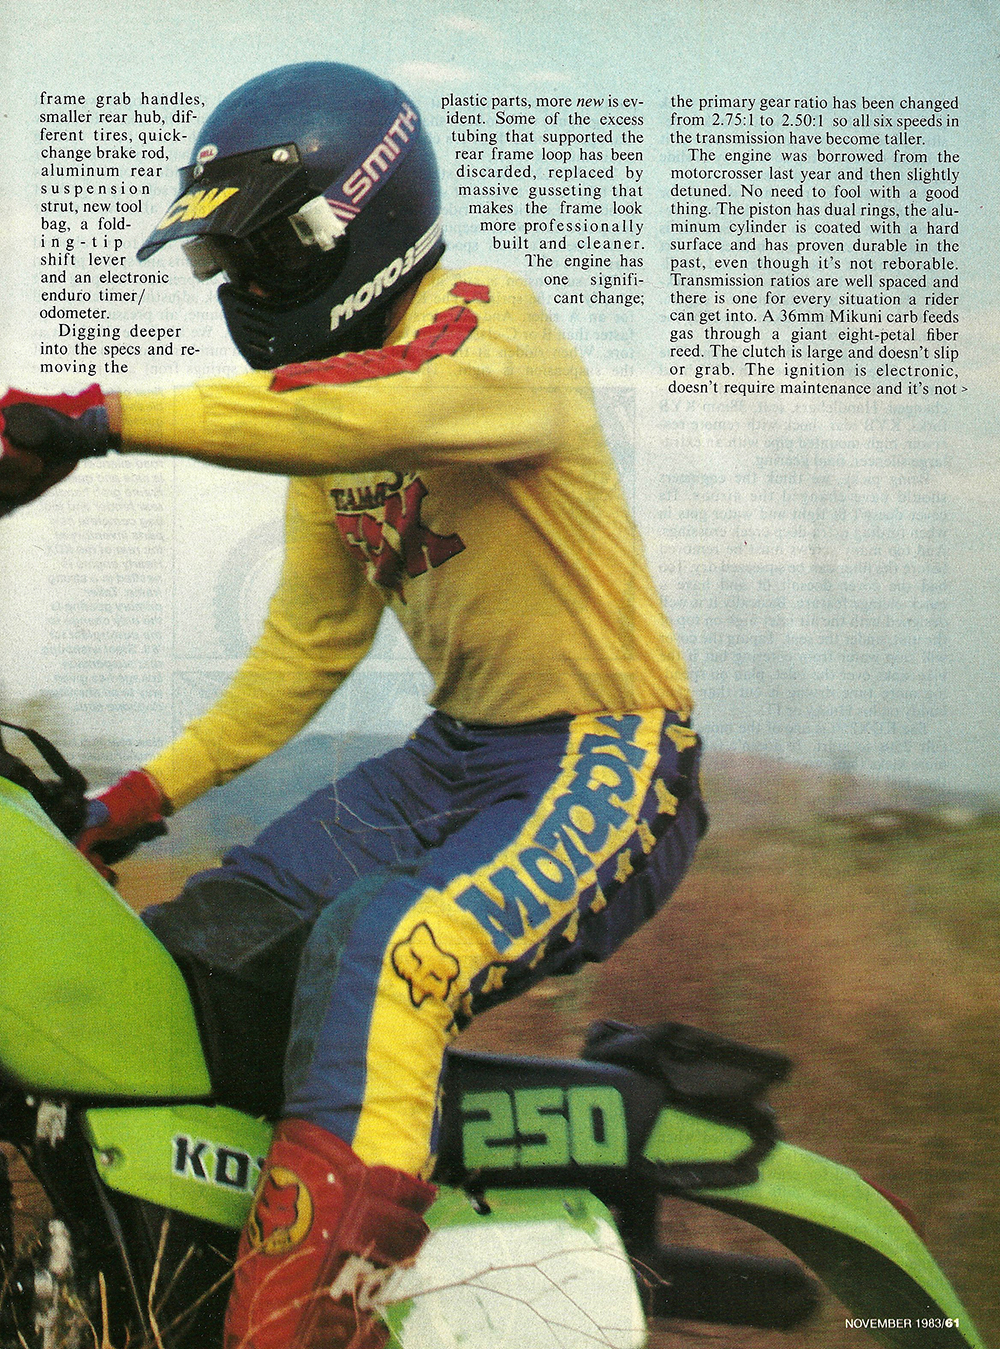 1983 Kawasaki kdx250 road test 02.jpg